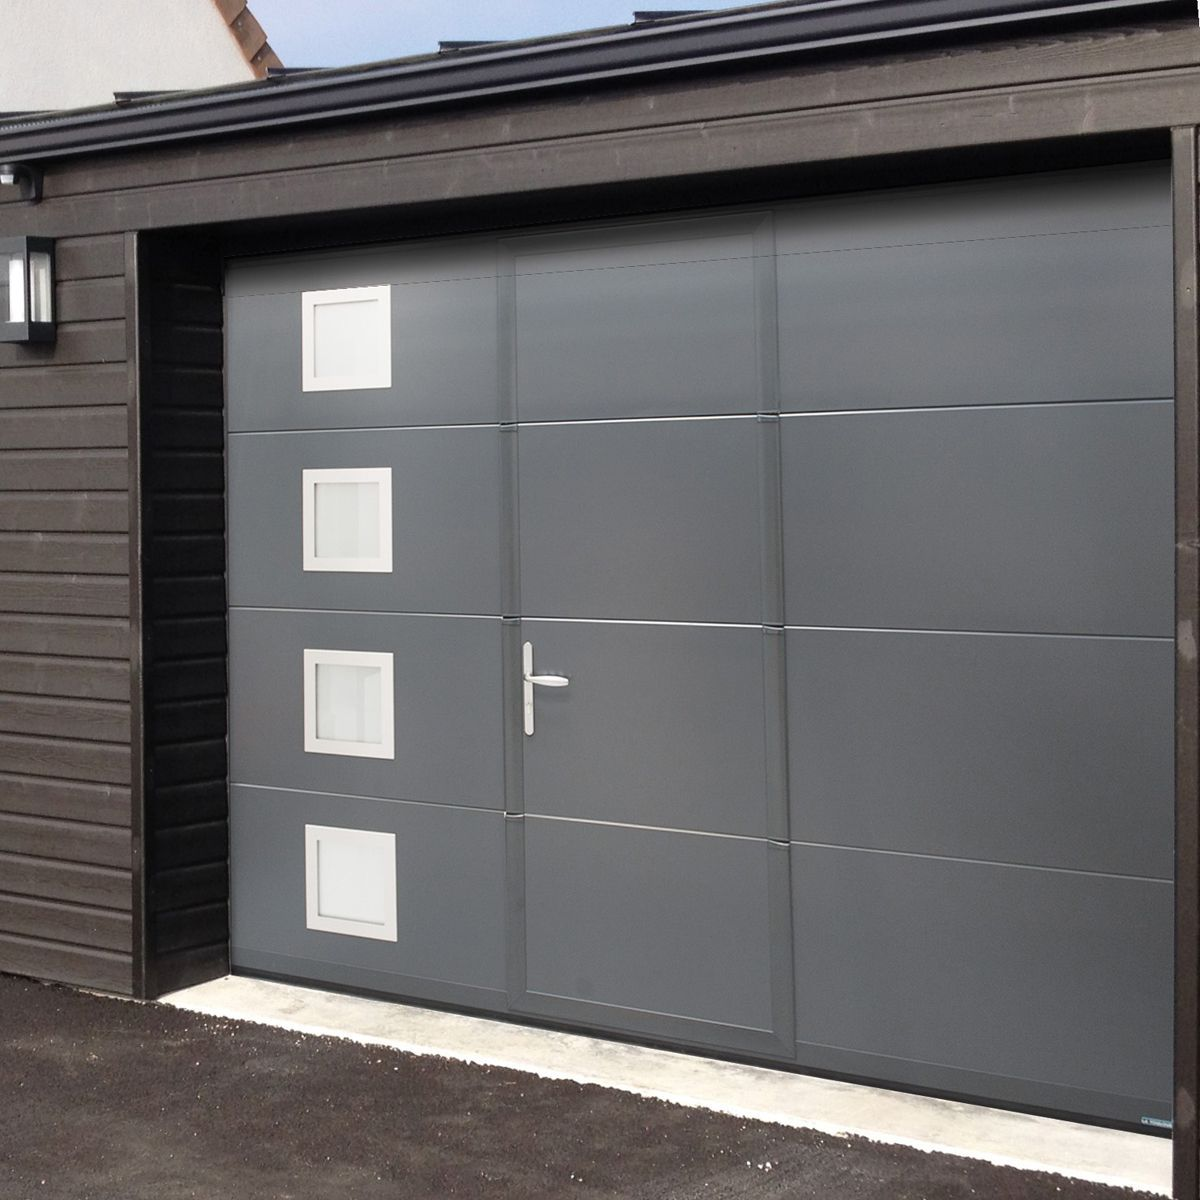 Portes de garage fabriqu es en france sur mesure isoferm for Porte de garage 2 battants sur mesure